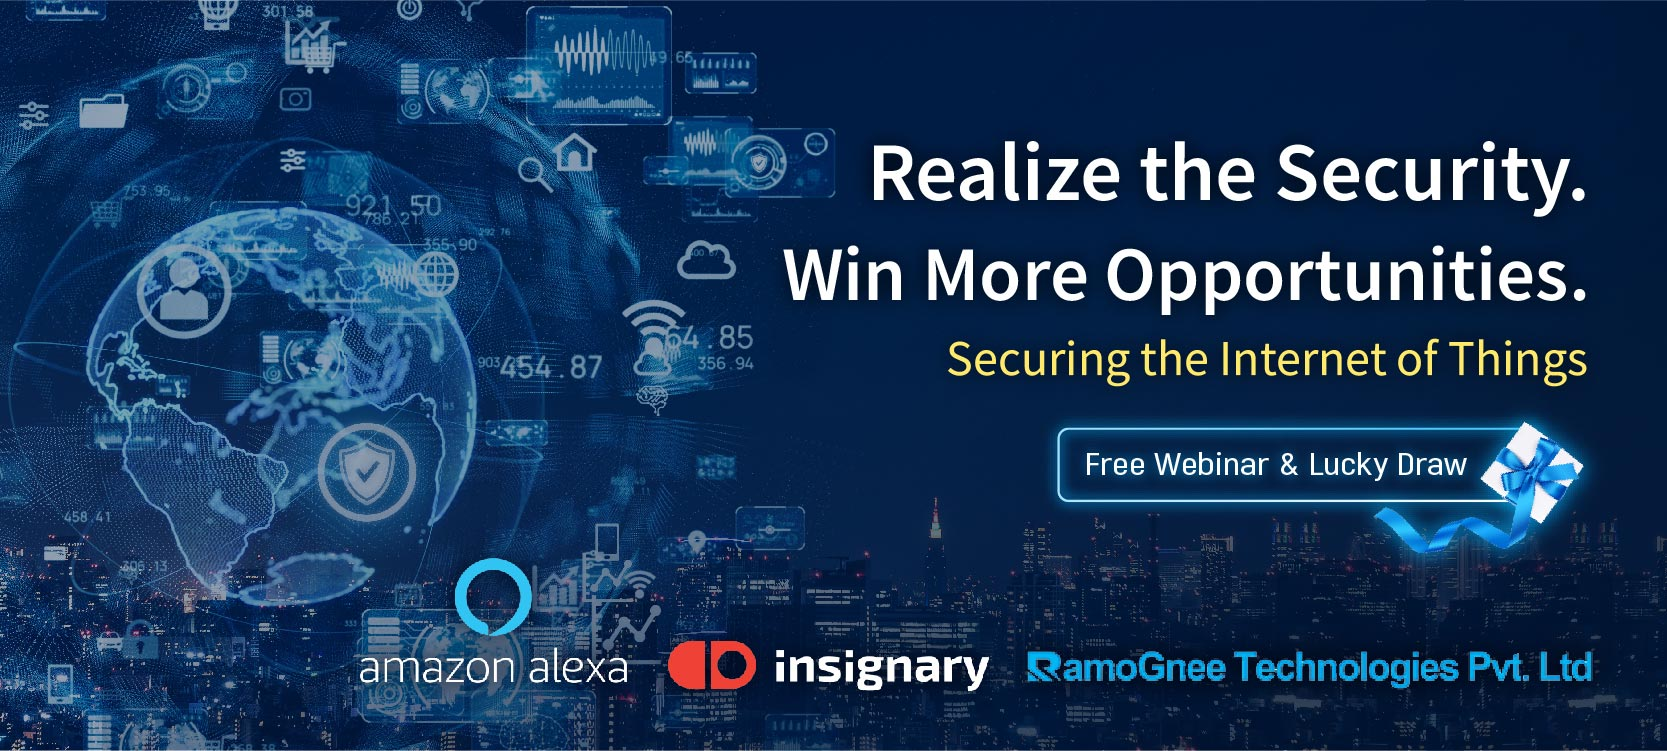 Free Webinar & Lucky Draw : Realize the Security. Win More Opportunities. - Onward Security